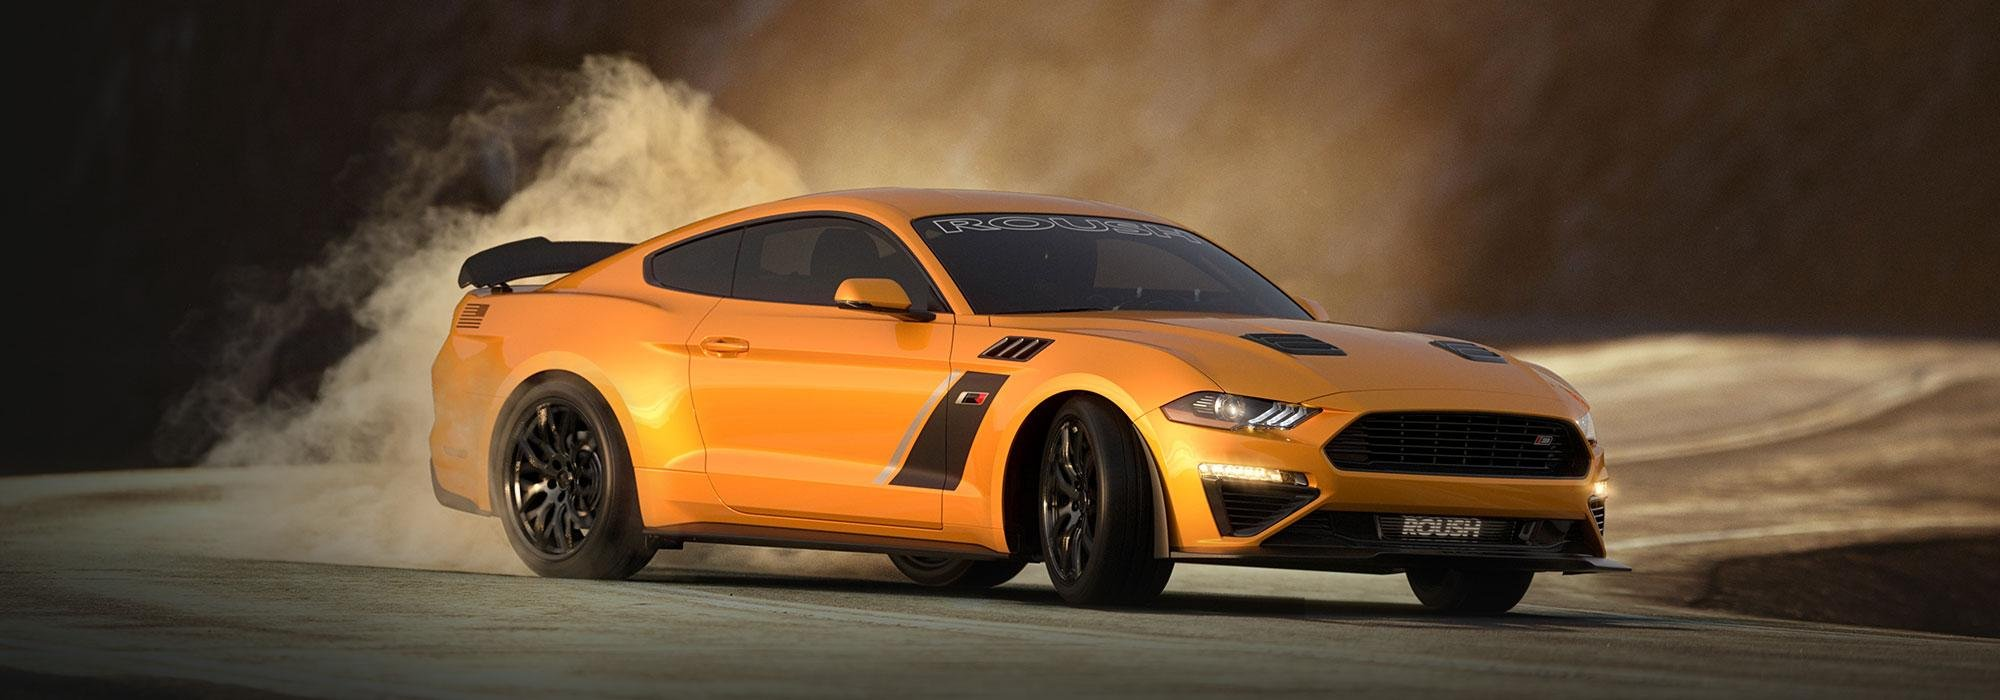 Roush Stage 3 Mustang Configurator Live Allfordmustangs